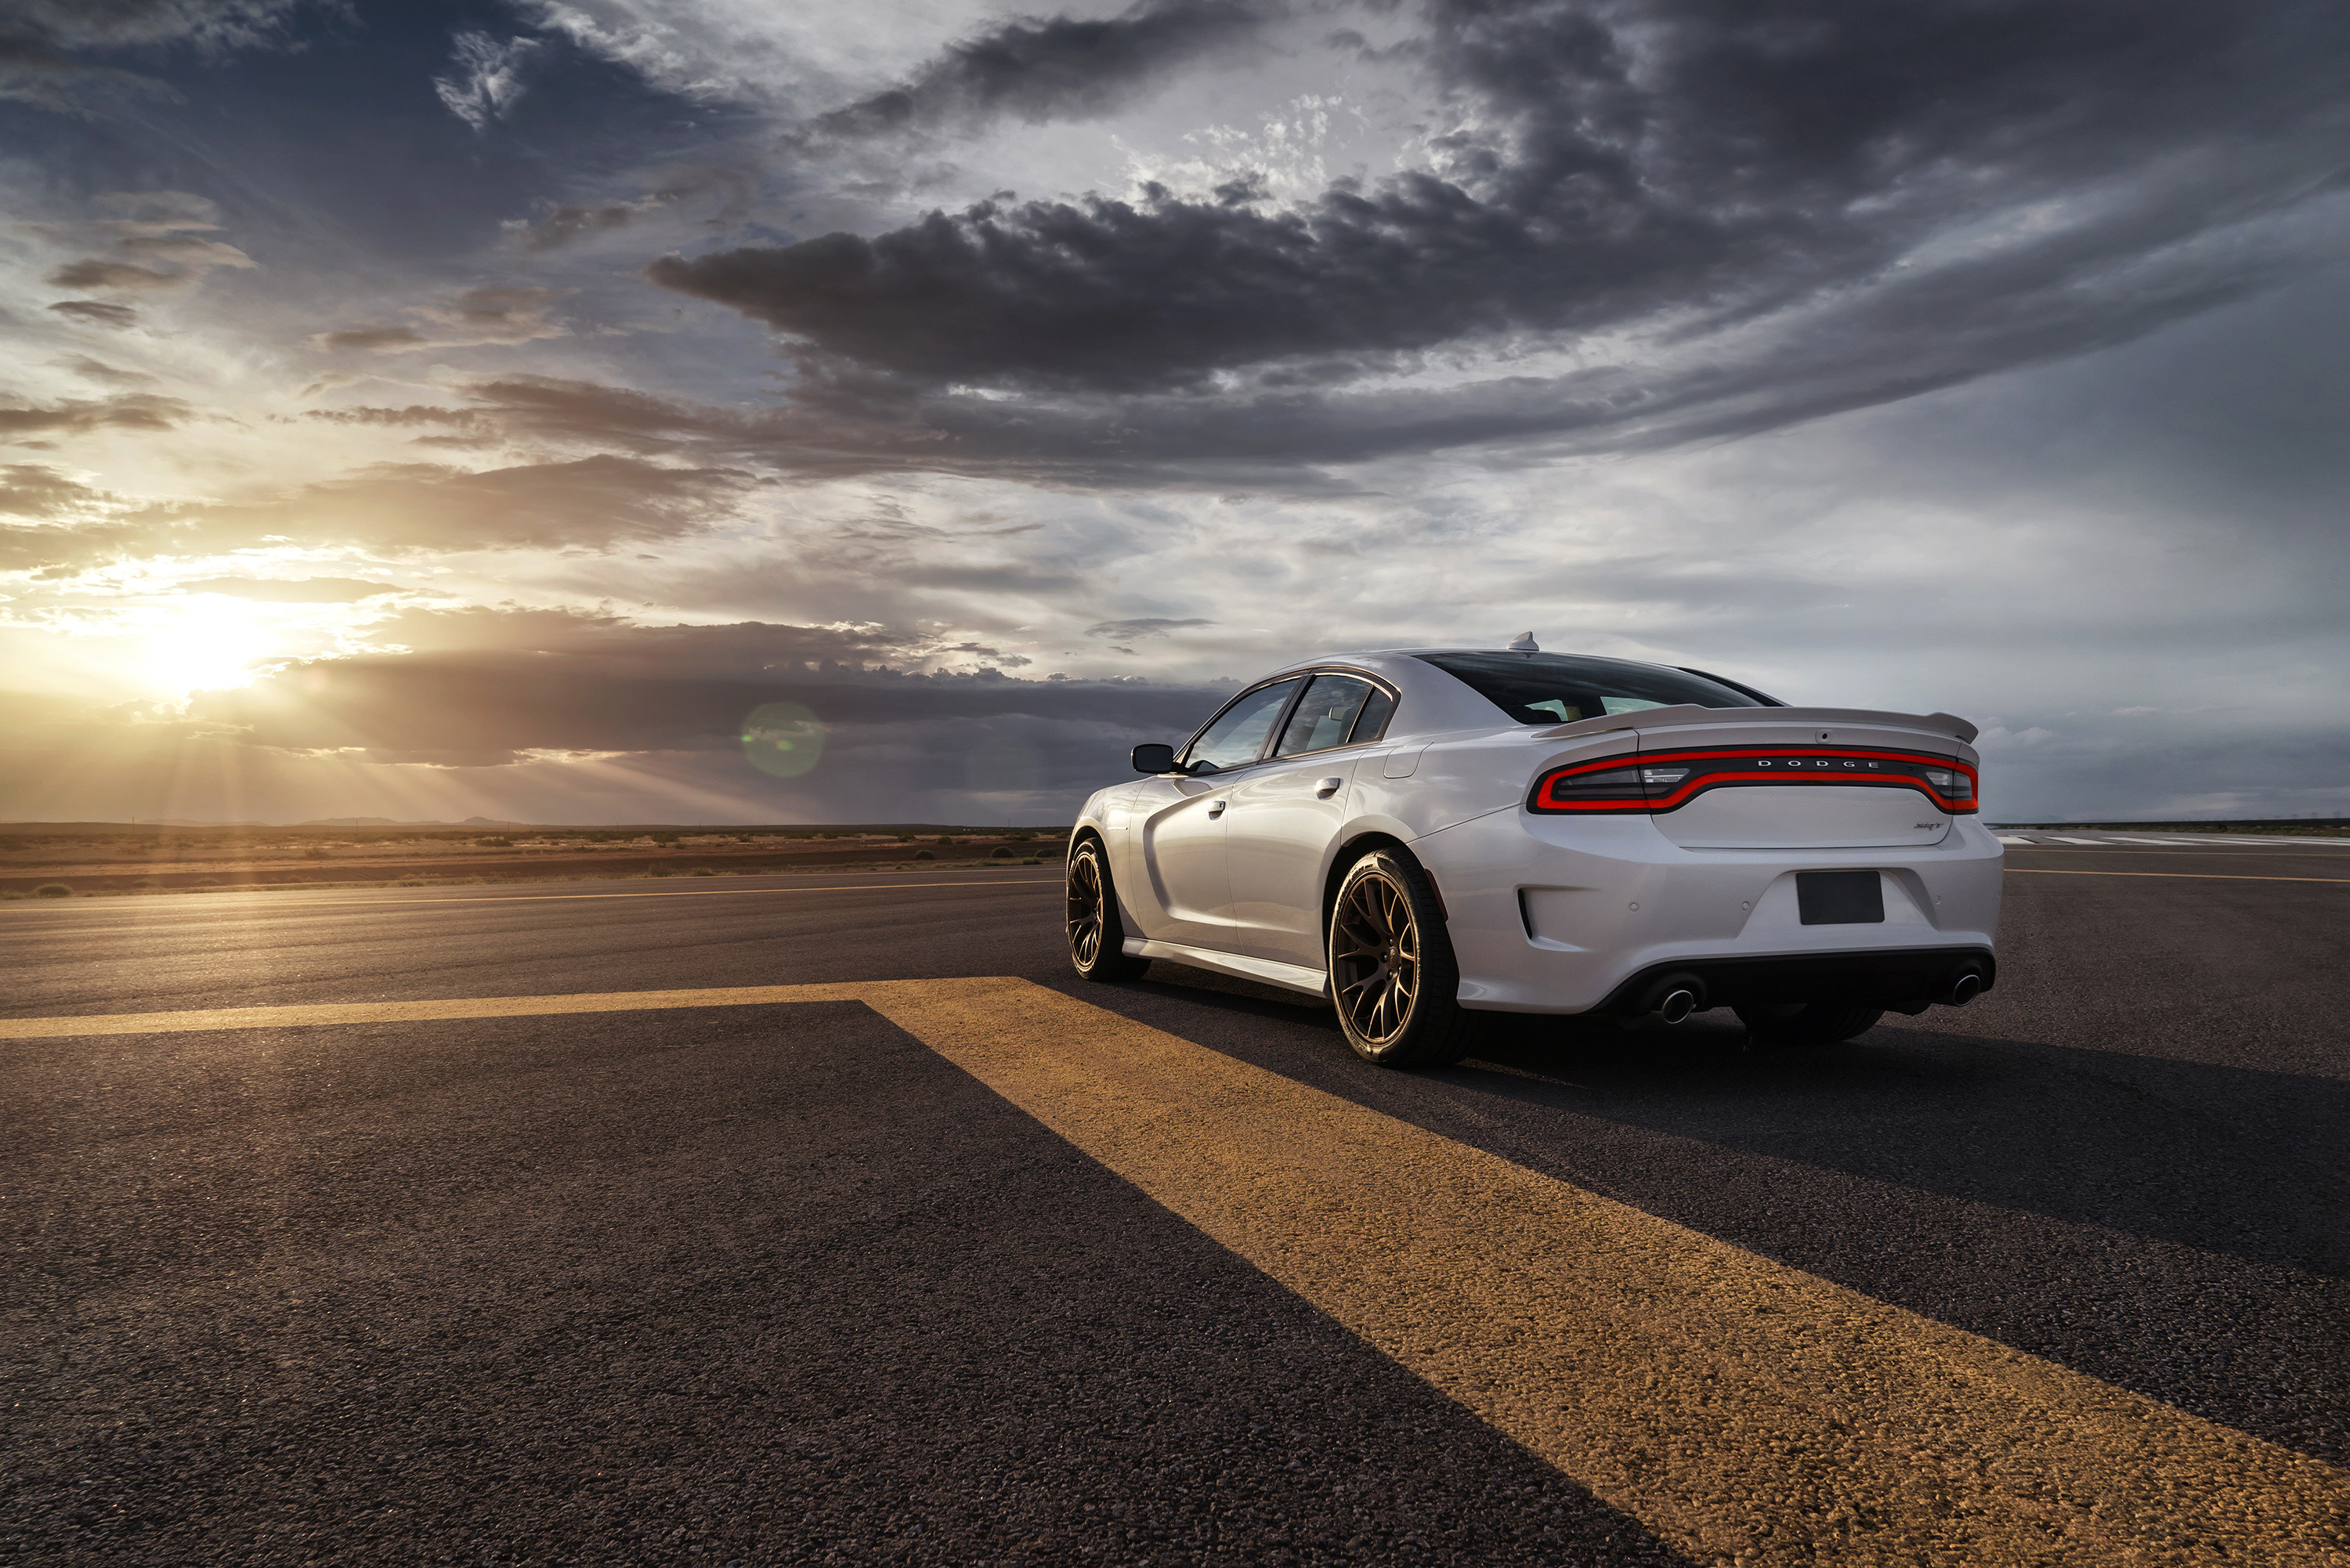 3000x2002 Dodge Charger Srt Hellcat 2015 Cars Road - Free Stock Photos, Images, HD  Wallpaper